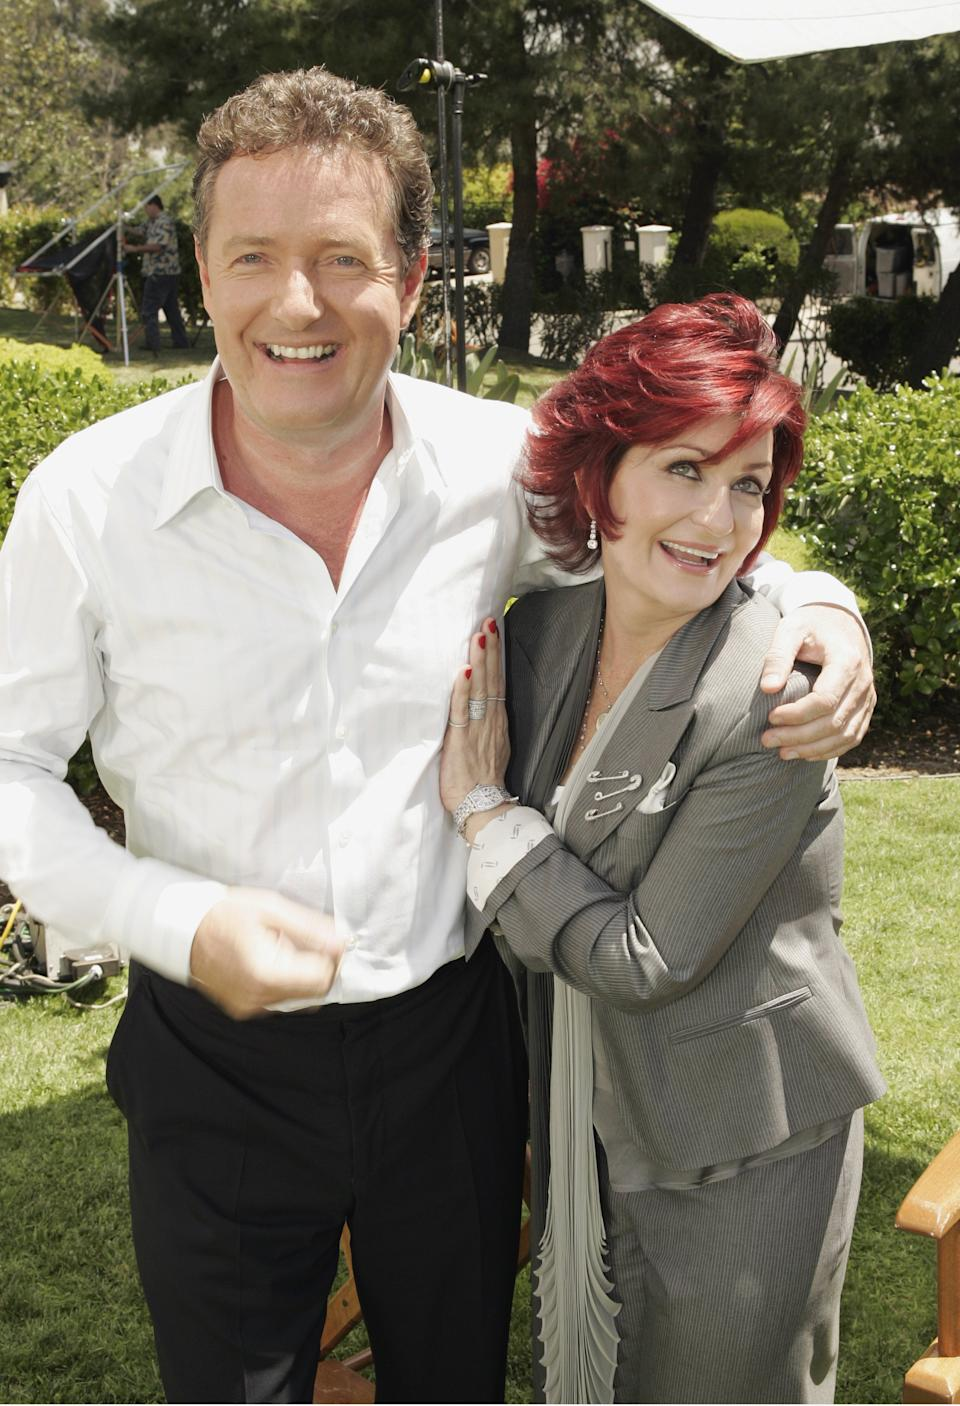 Sharon Osbourne and Piers Morgan on April 27, 2007. (Chris Haston/NBCU Photo Bank)